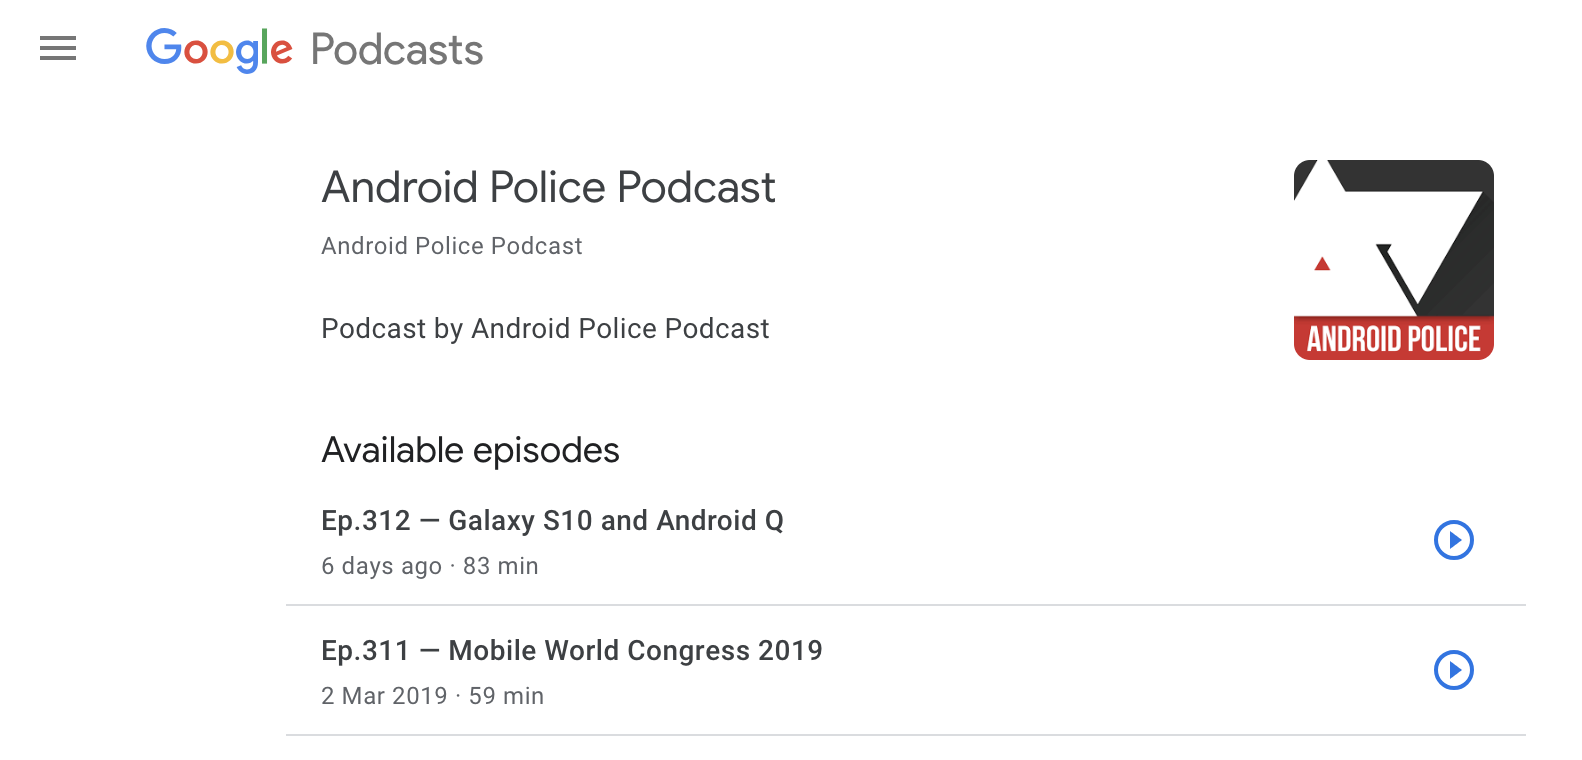 You can listen to Google Podcasts on the web with a simple URL edit